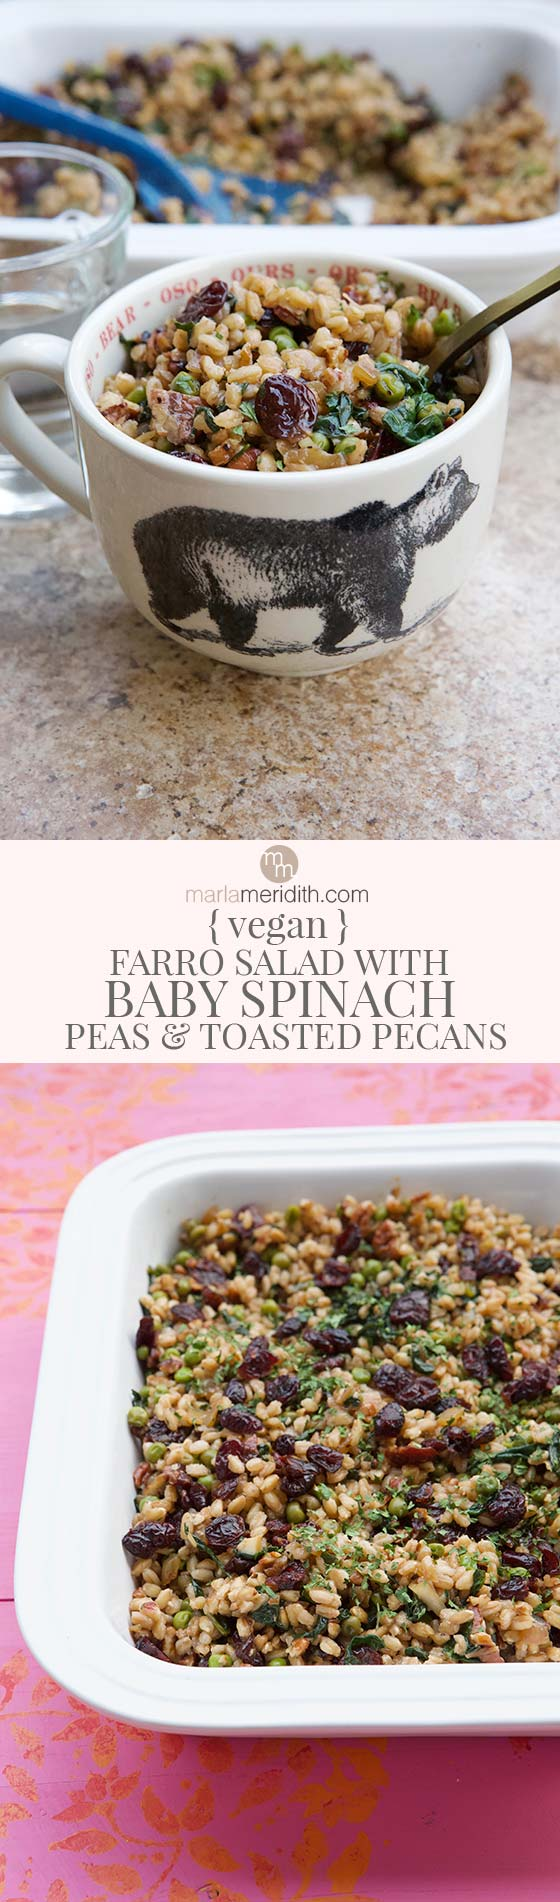 This Vegan Farro Salad with Baby Spinach, Peas & Toasted Pecans is a full, hearty meal, but also weighs in light and easy for summer. Get the recipe on MarlaMeridith.com